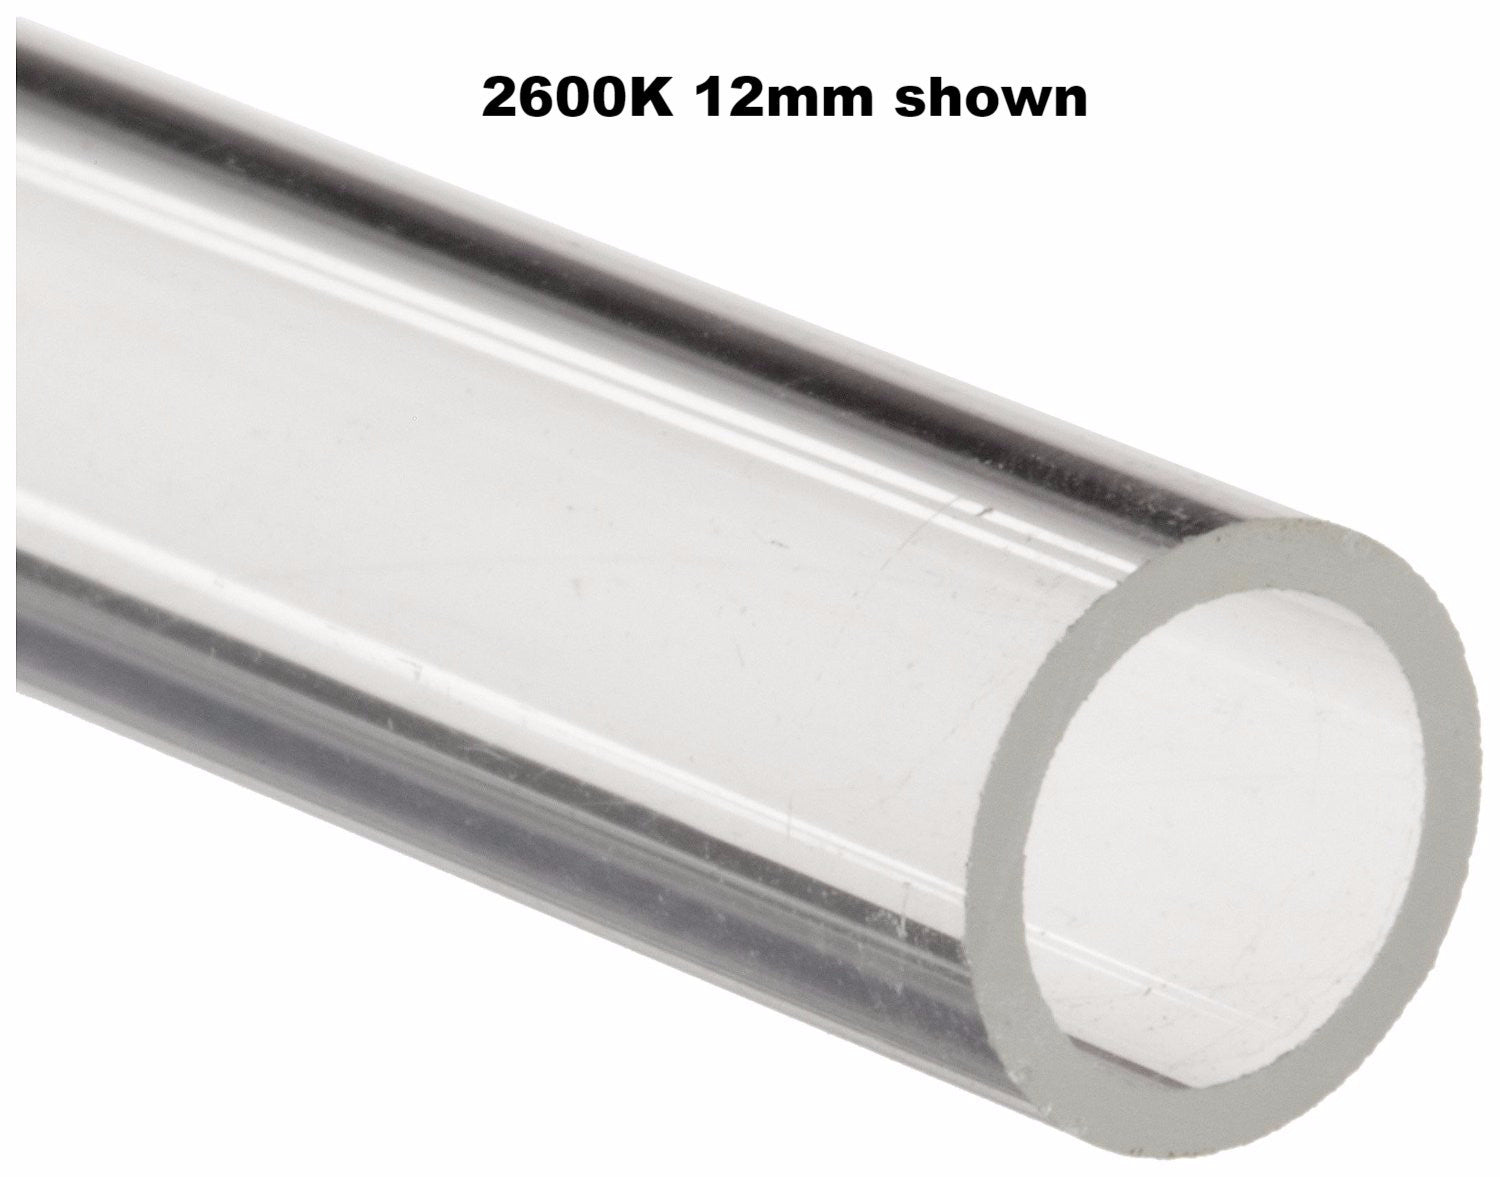 "5mm Soda Lime Glass Tubing 12""L - The Science Shop"